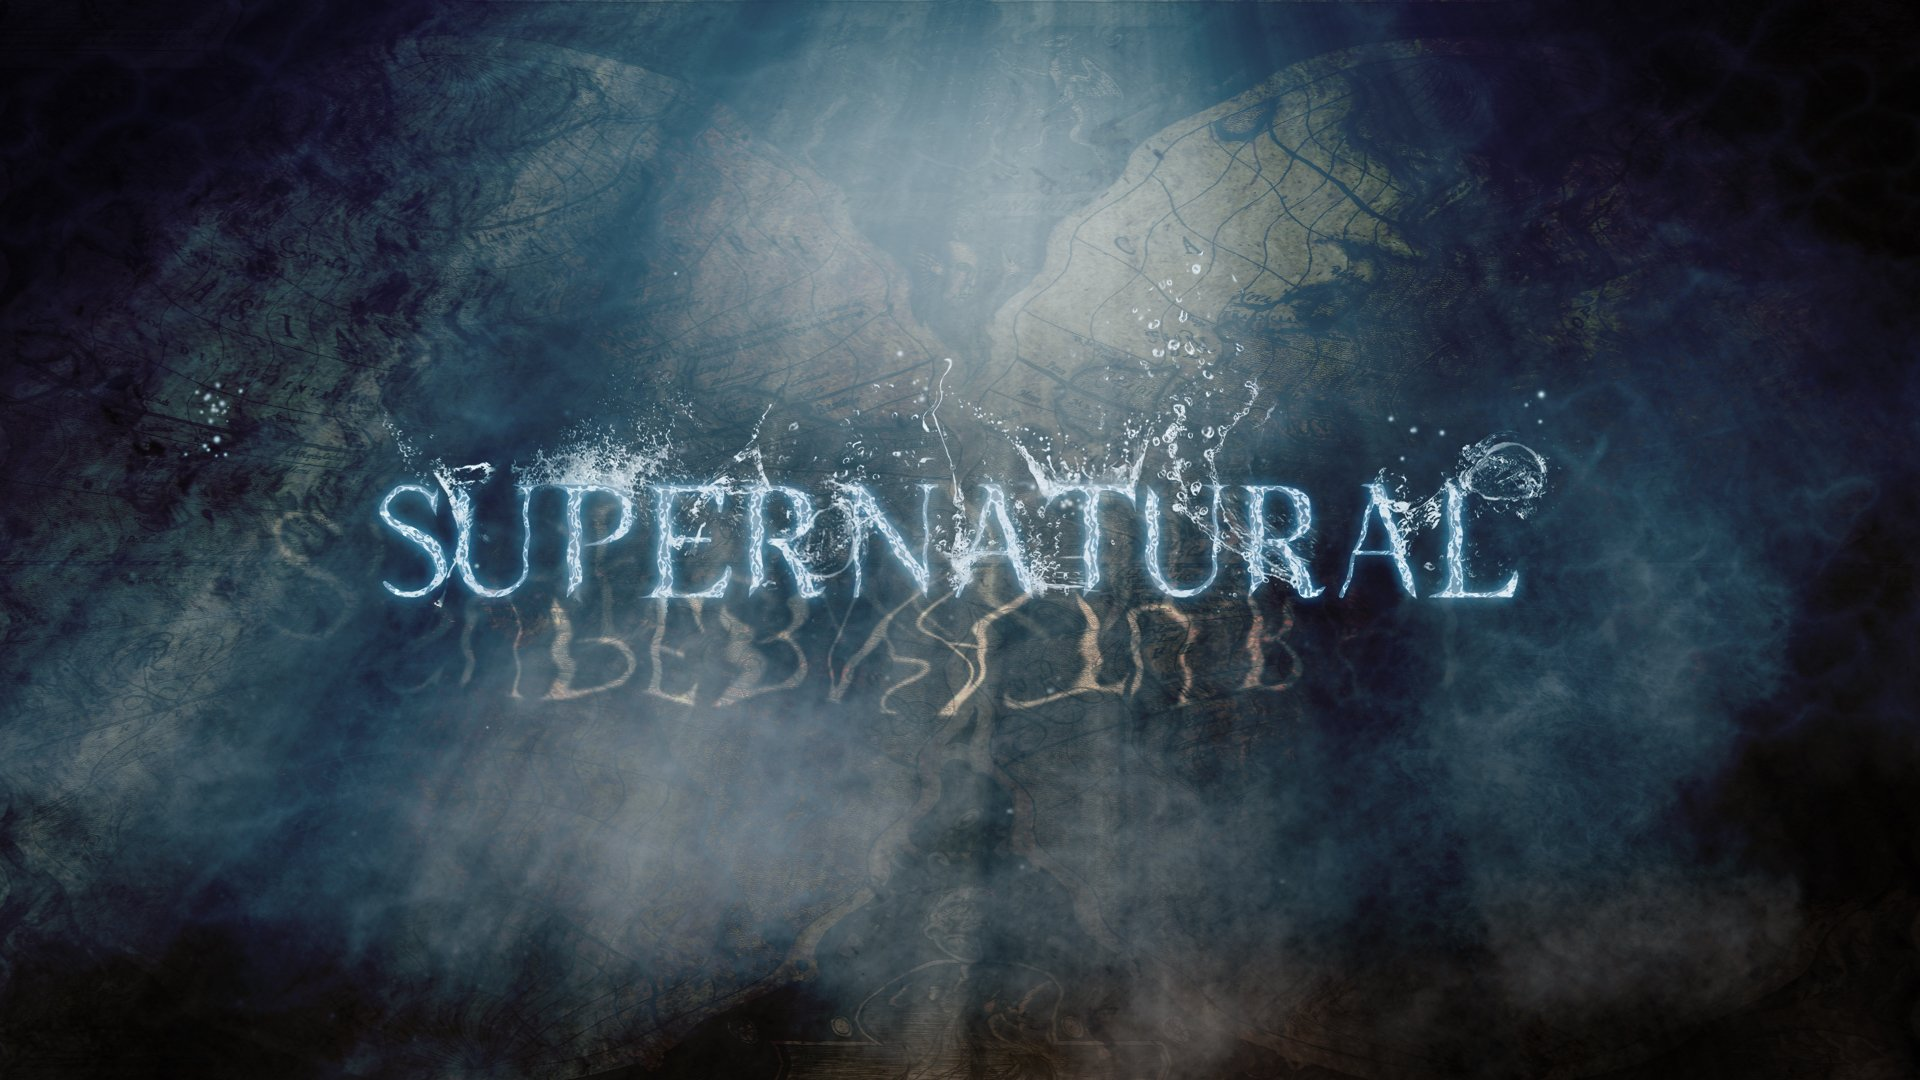 Supernatural HD Wallpaper 2